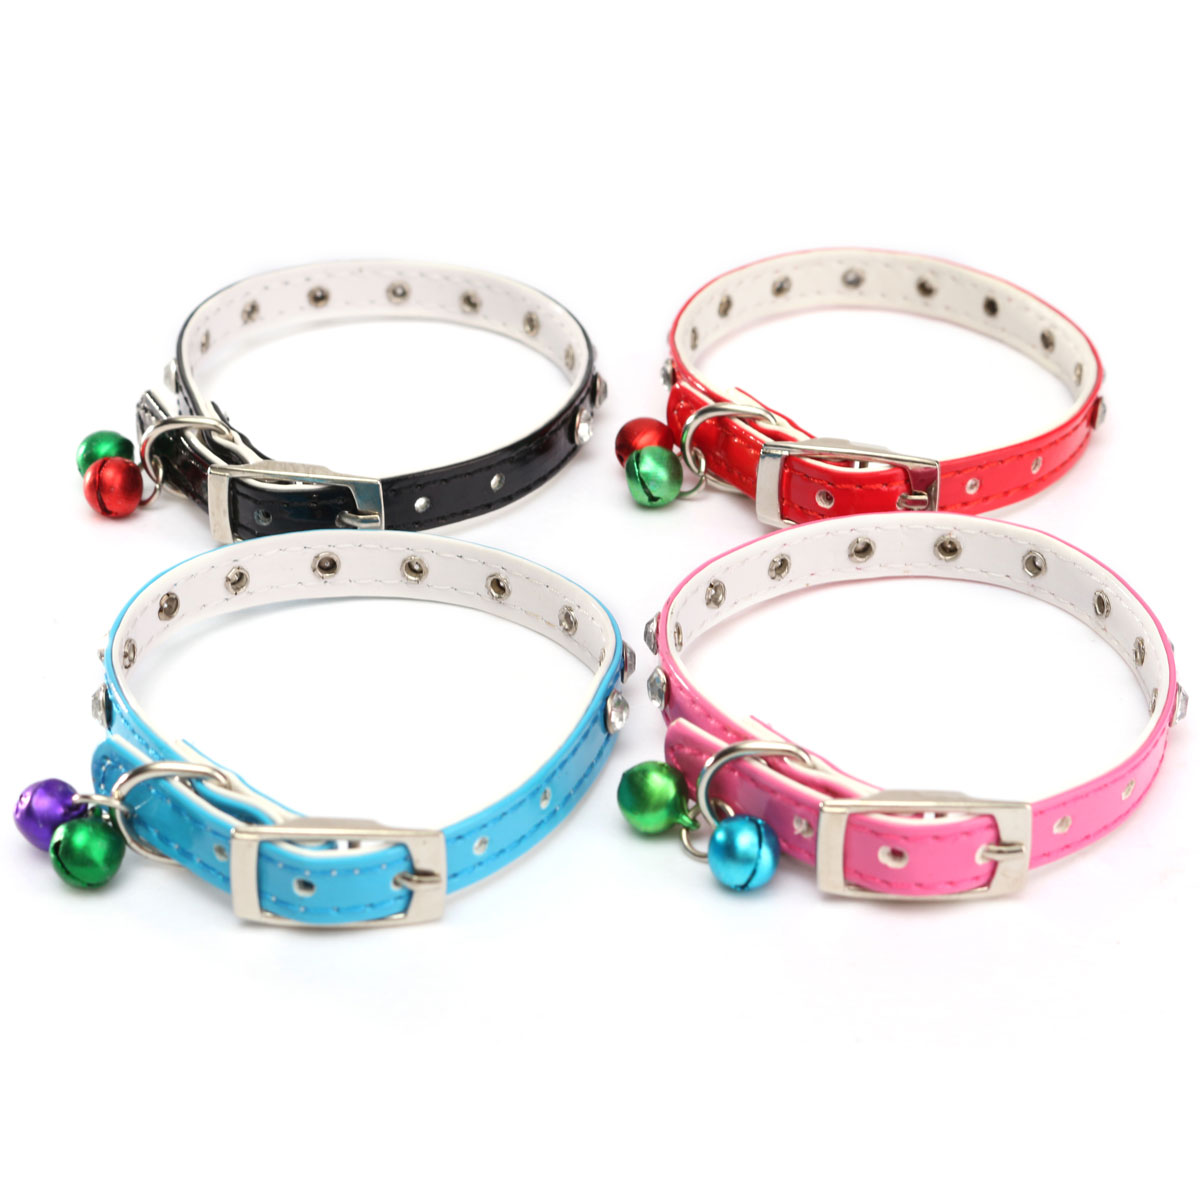 Bling PU Leather Collar Dog Bell Adjustable Collar Pet Puppy Buckle Cat Neck Strap Safety Accessories